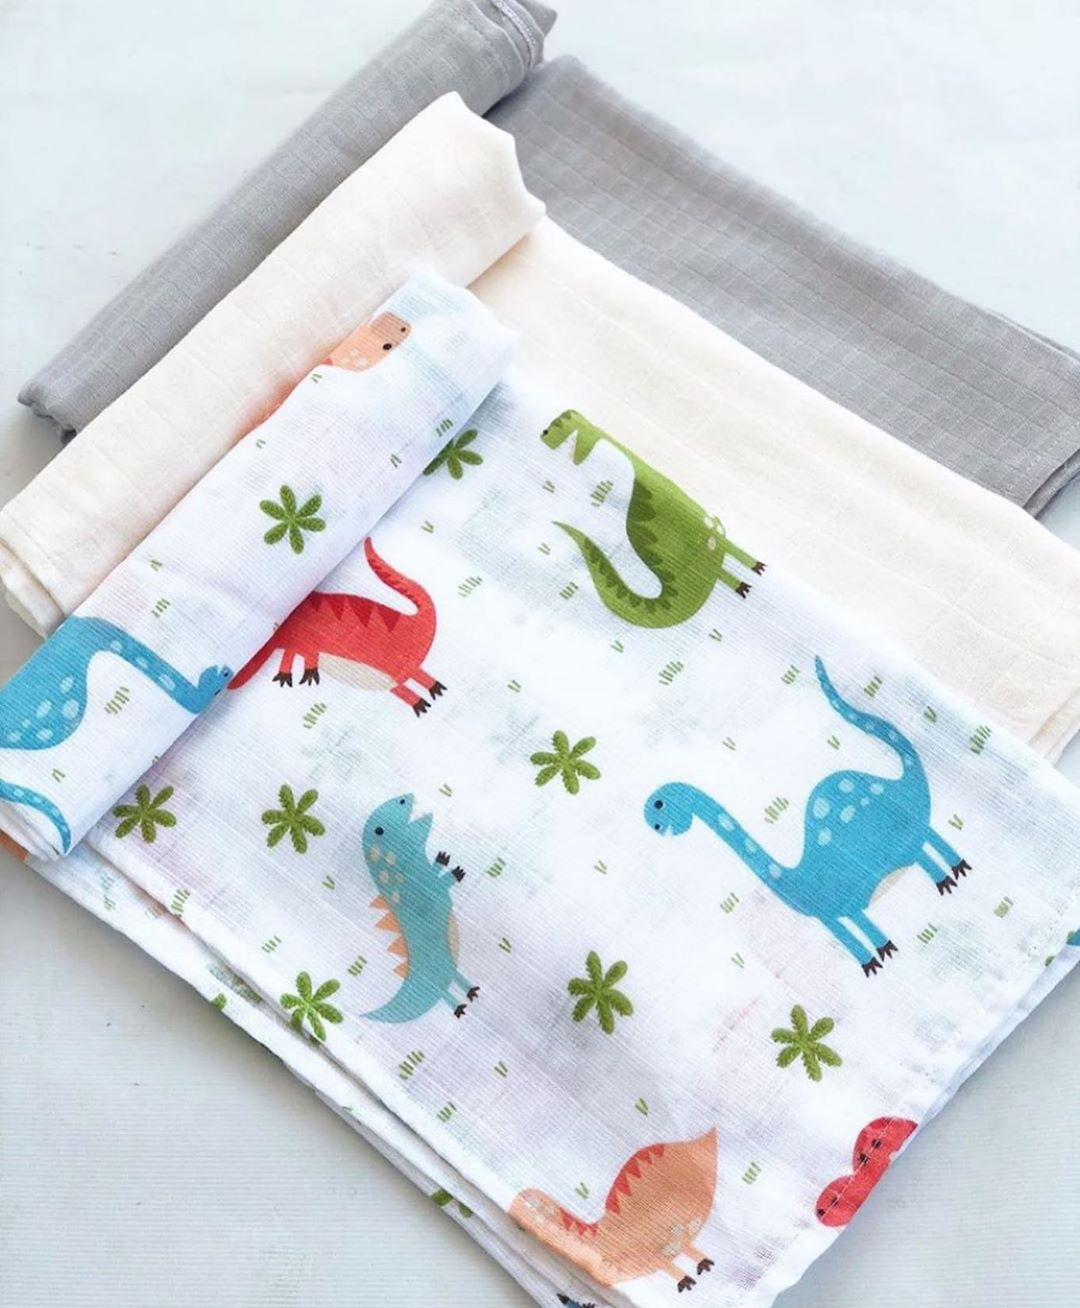 Swaddle Baby Cotton Bamboo Blanket Baby Muslin Blanket Swaddling Blanket Muslin 120x110cm